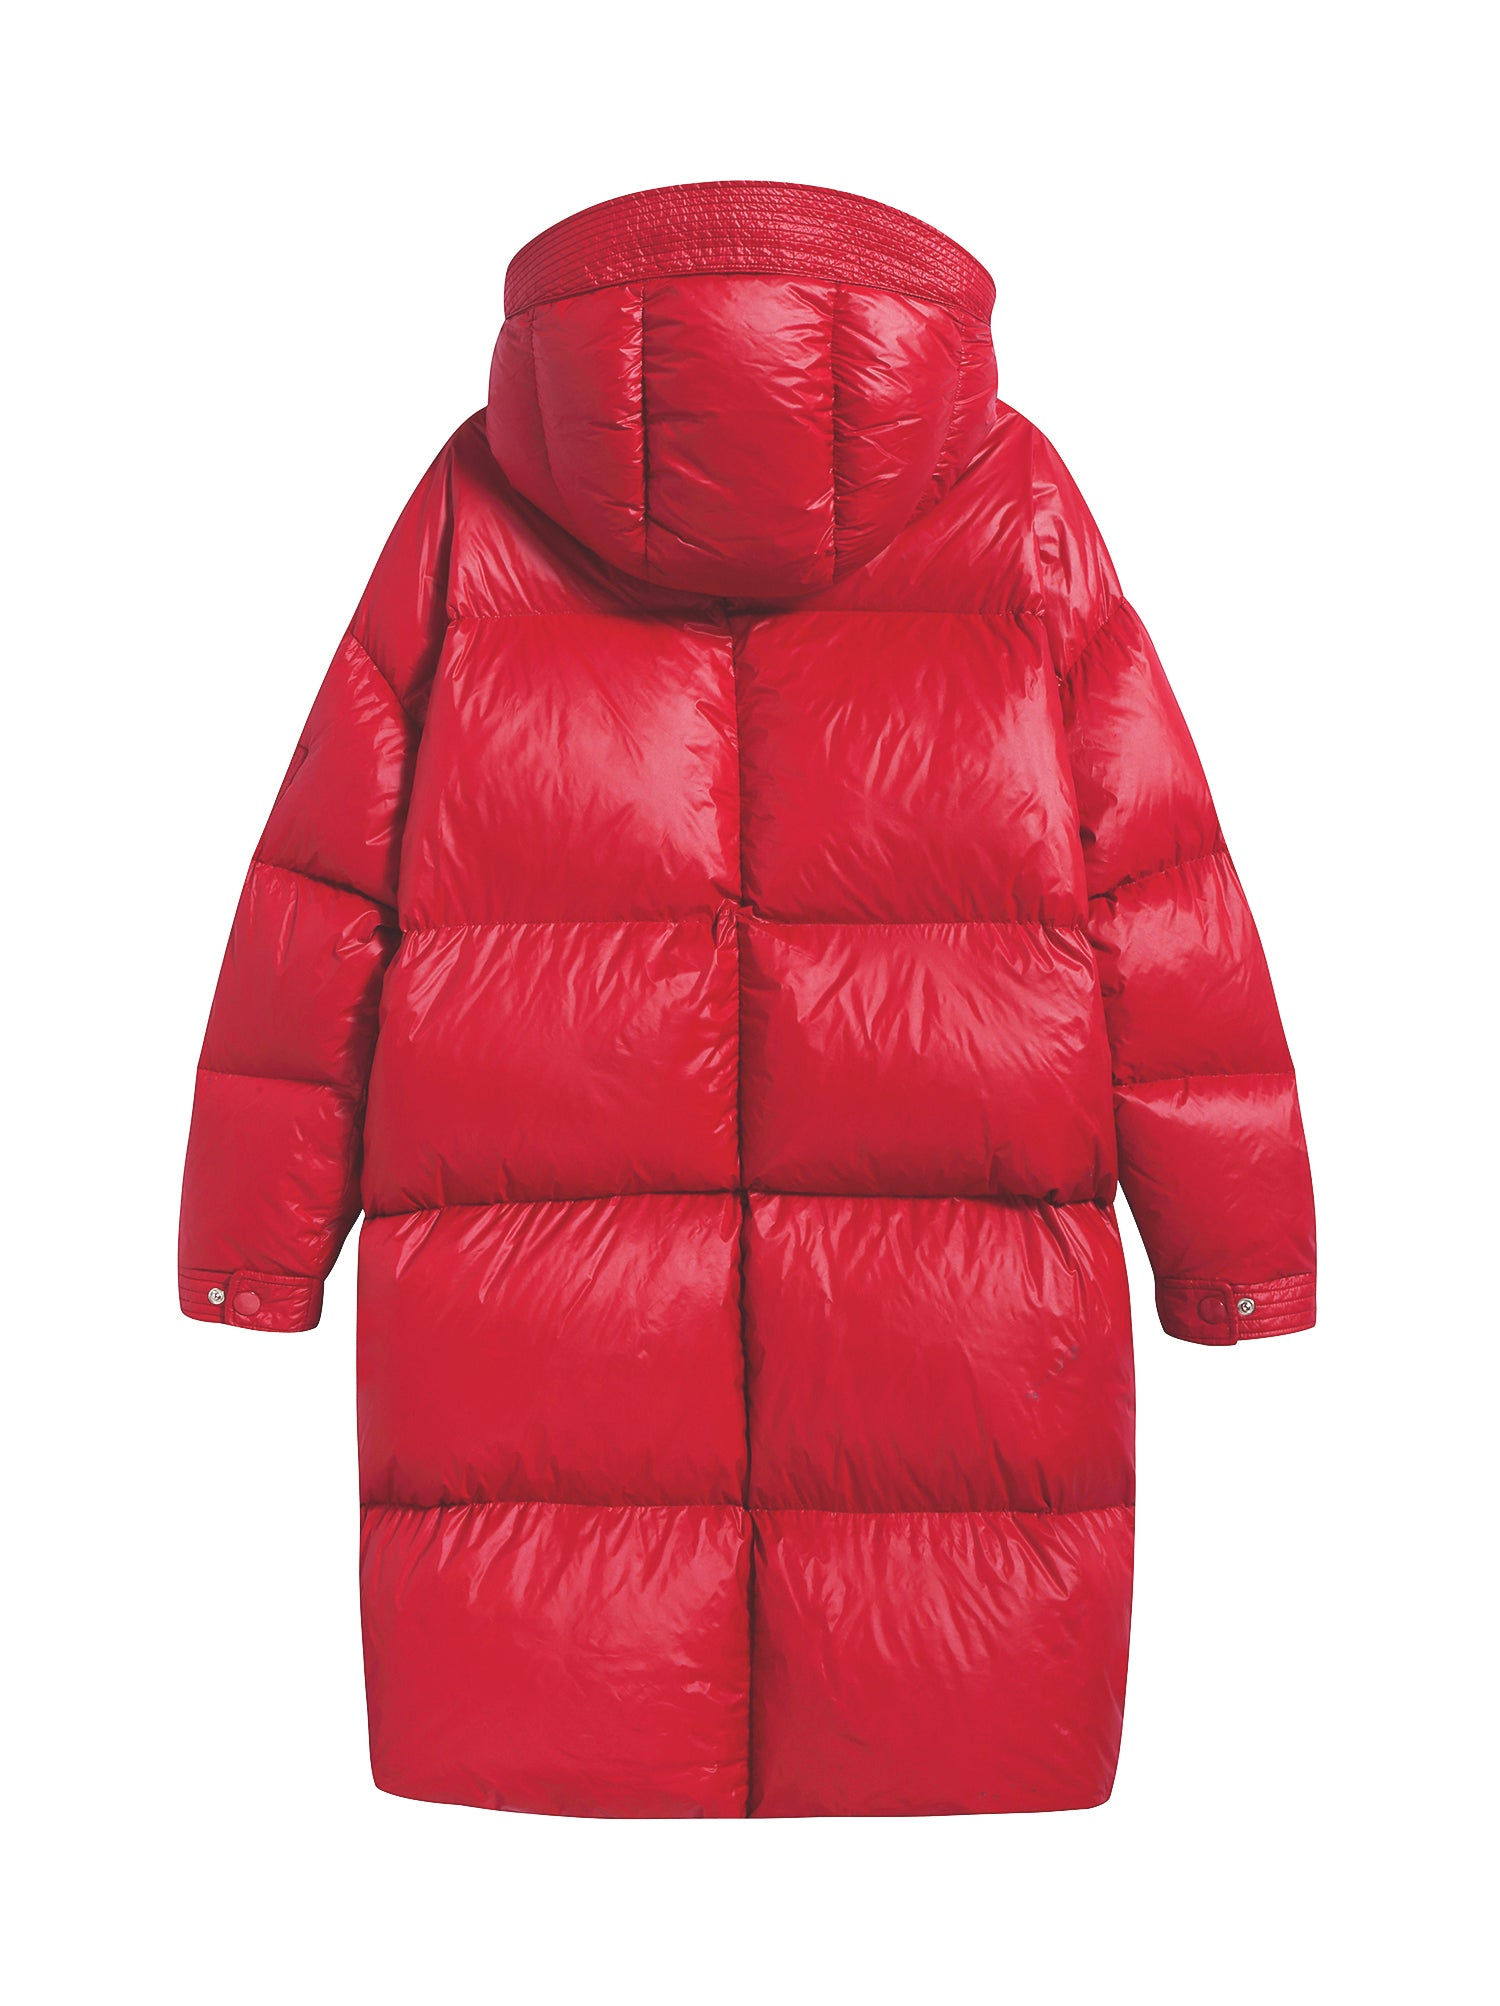 Glossy Red Quilted Goose Down Hooded Long Puffer Coat